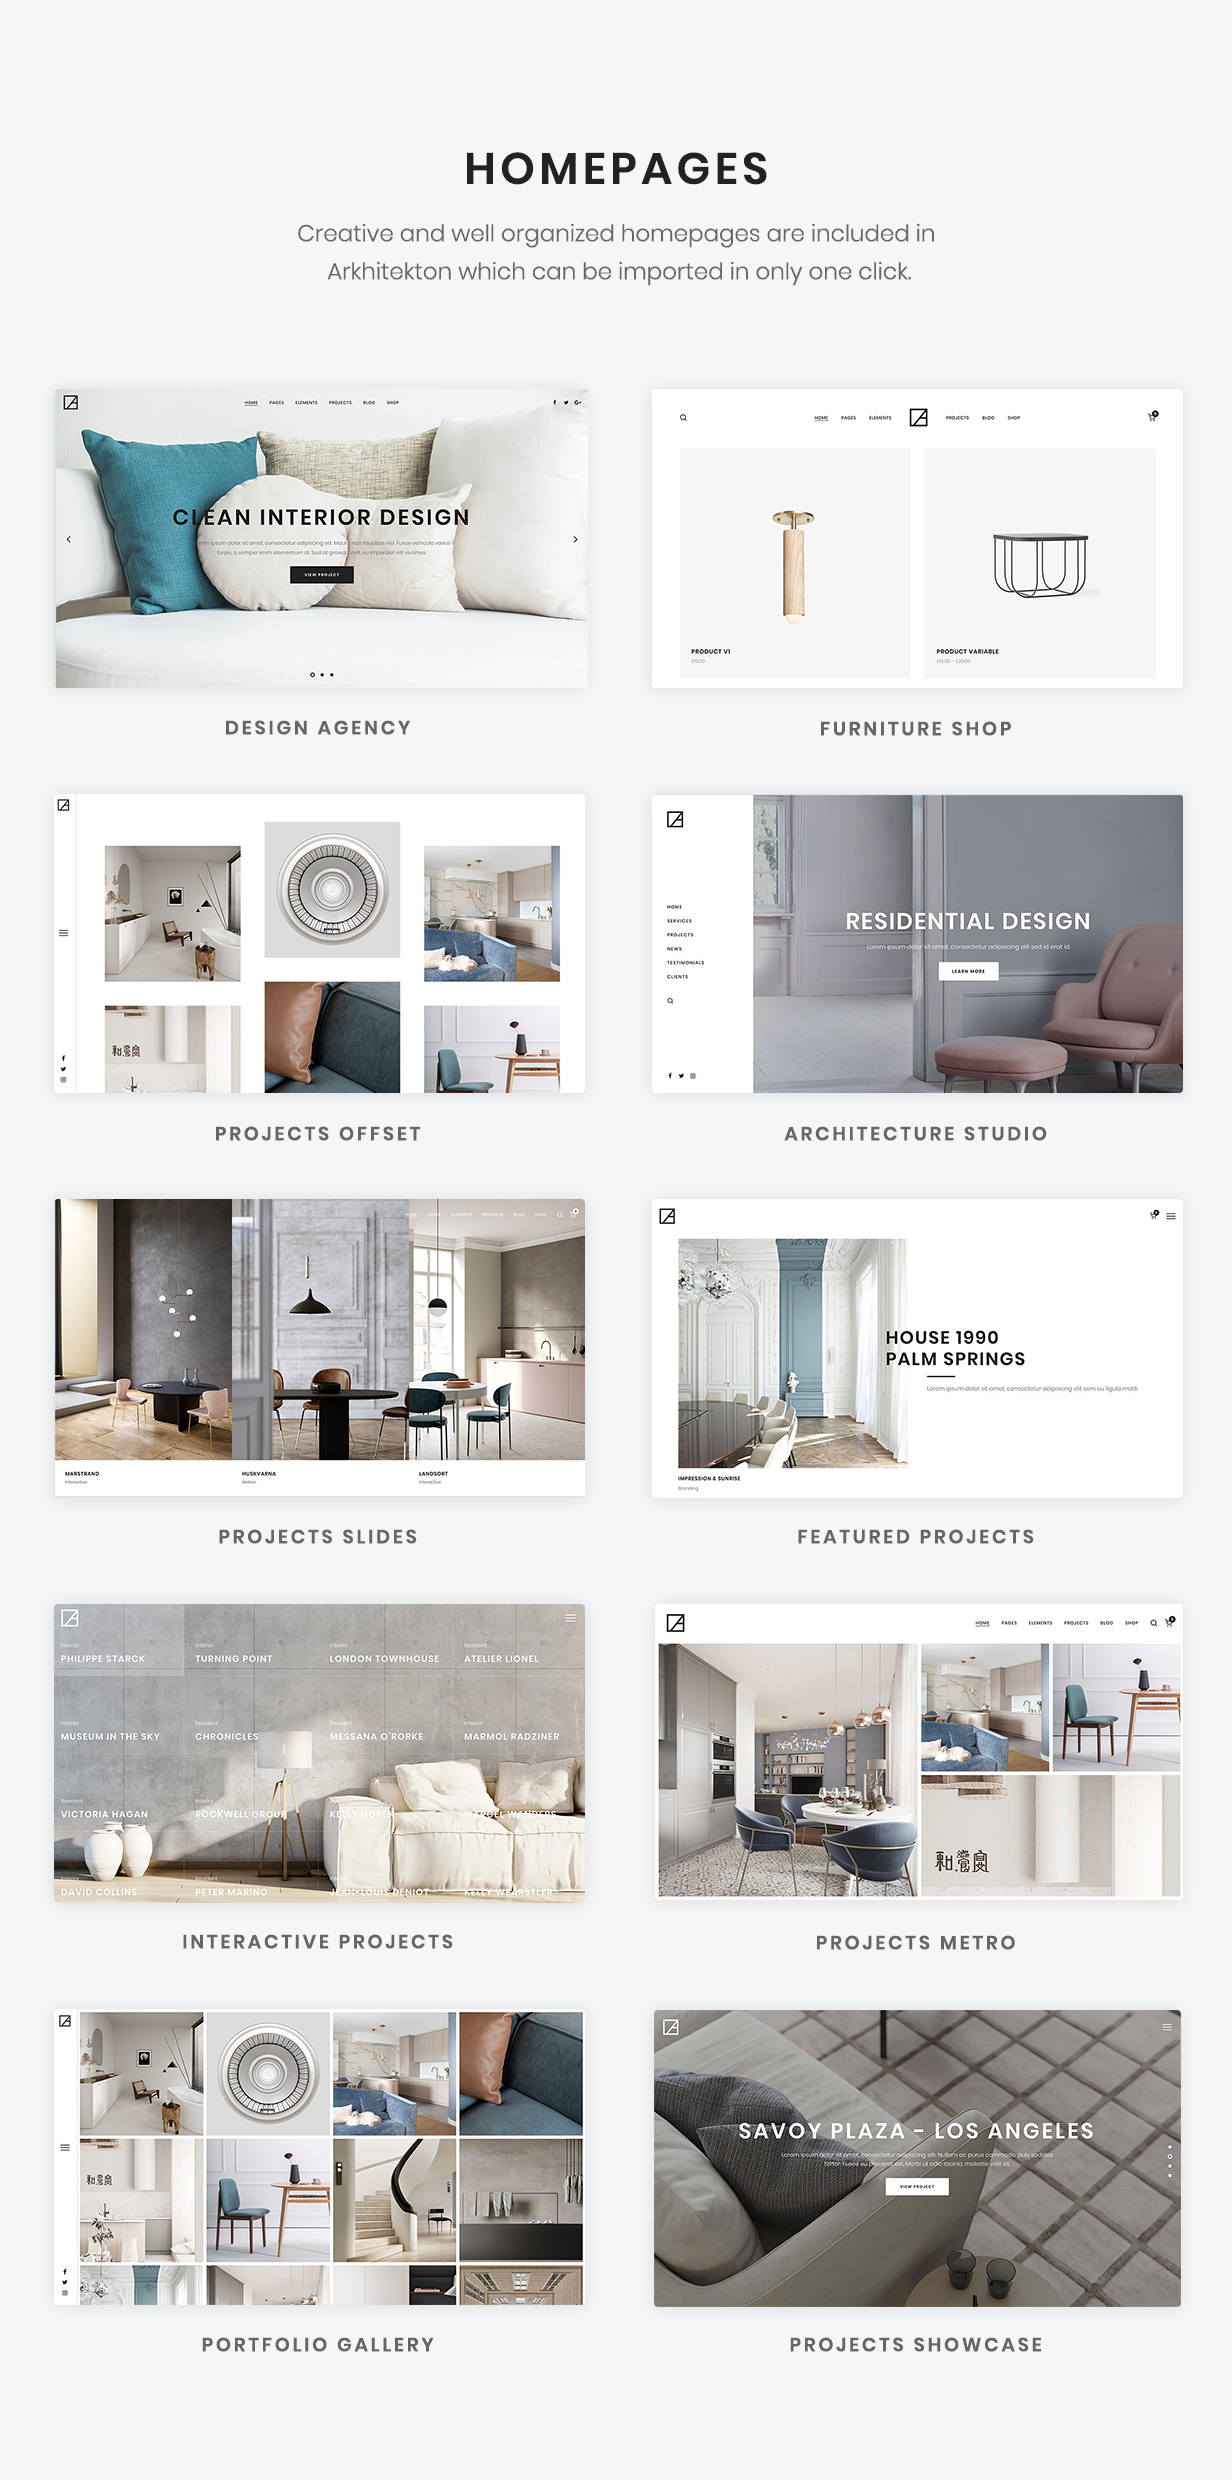 Arkhitekton Modern Architecture And Interior Design Wordpress Theme By Neuronthemes